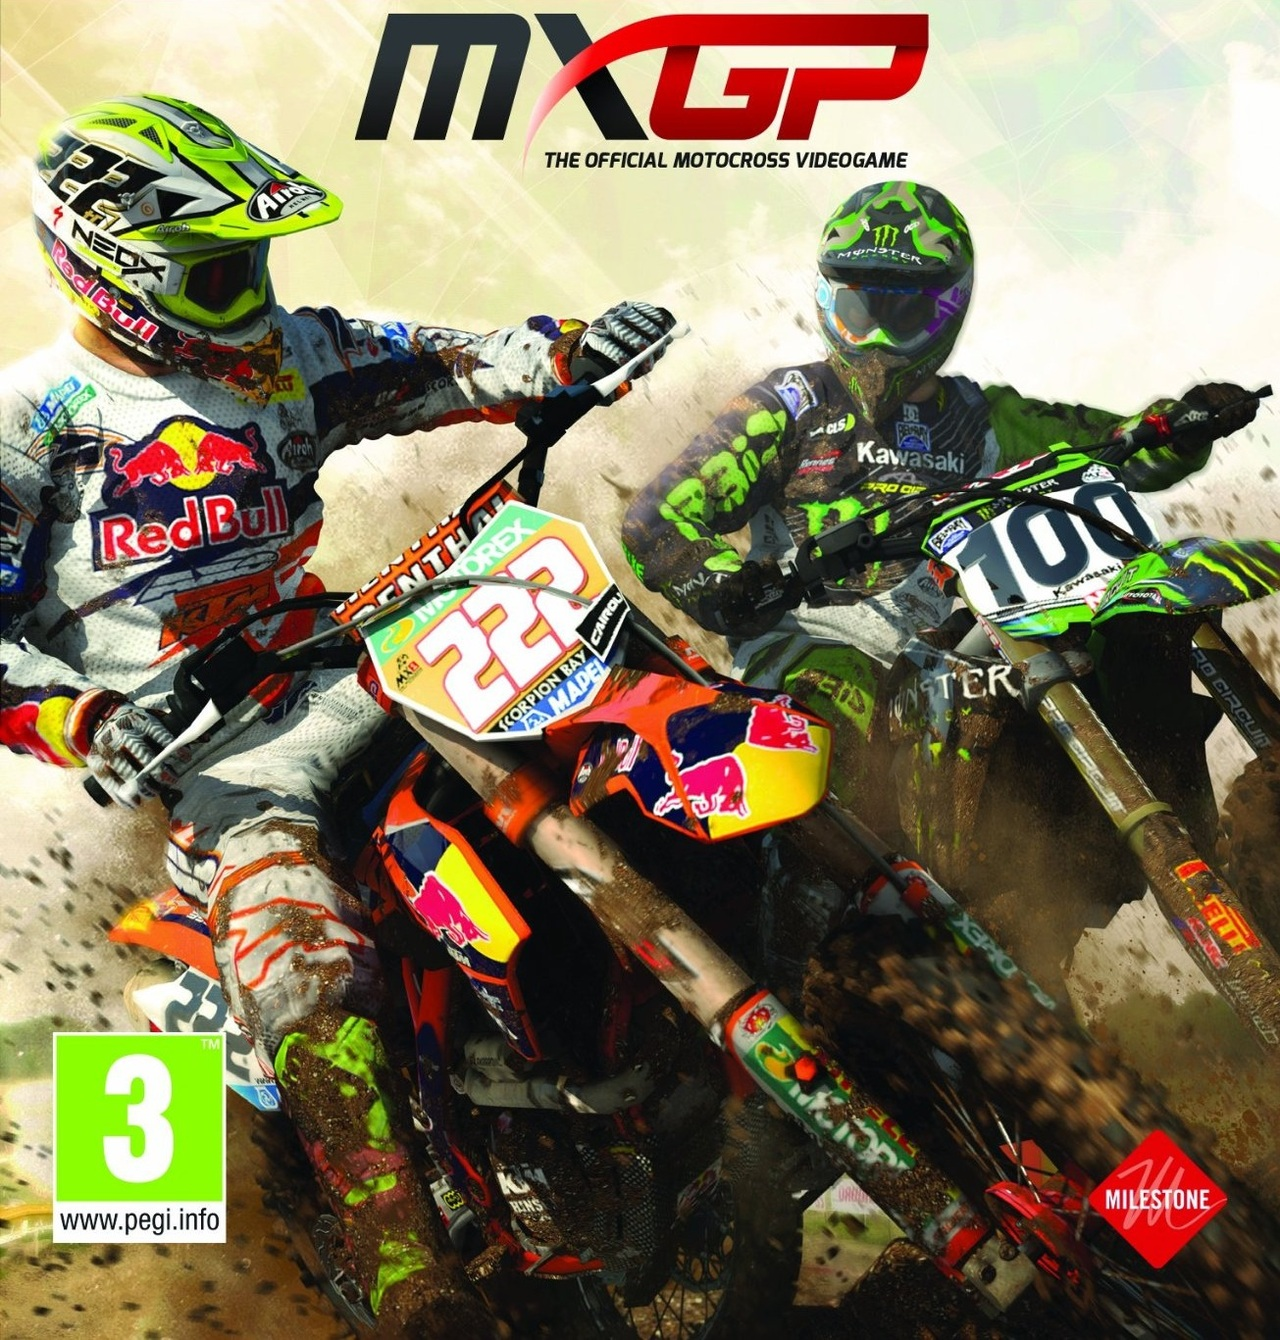 mxgp the official motocross videogame sur pc. Black Bedroom Furniture Sets. Home Design Ideas